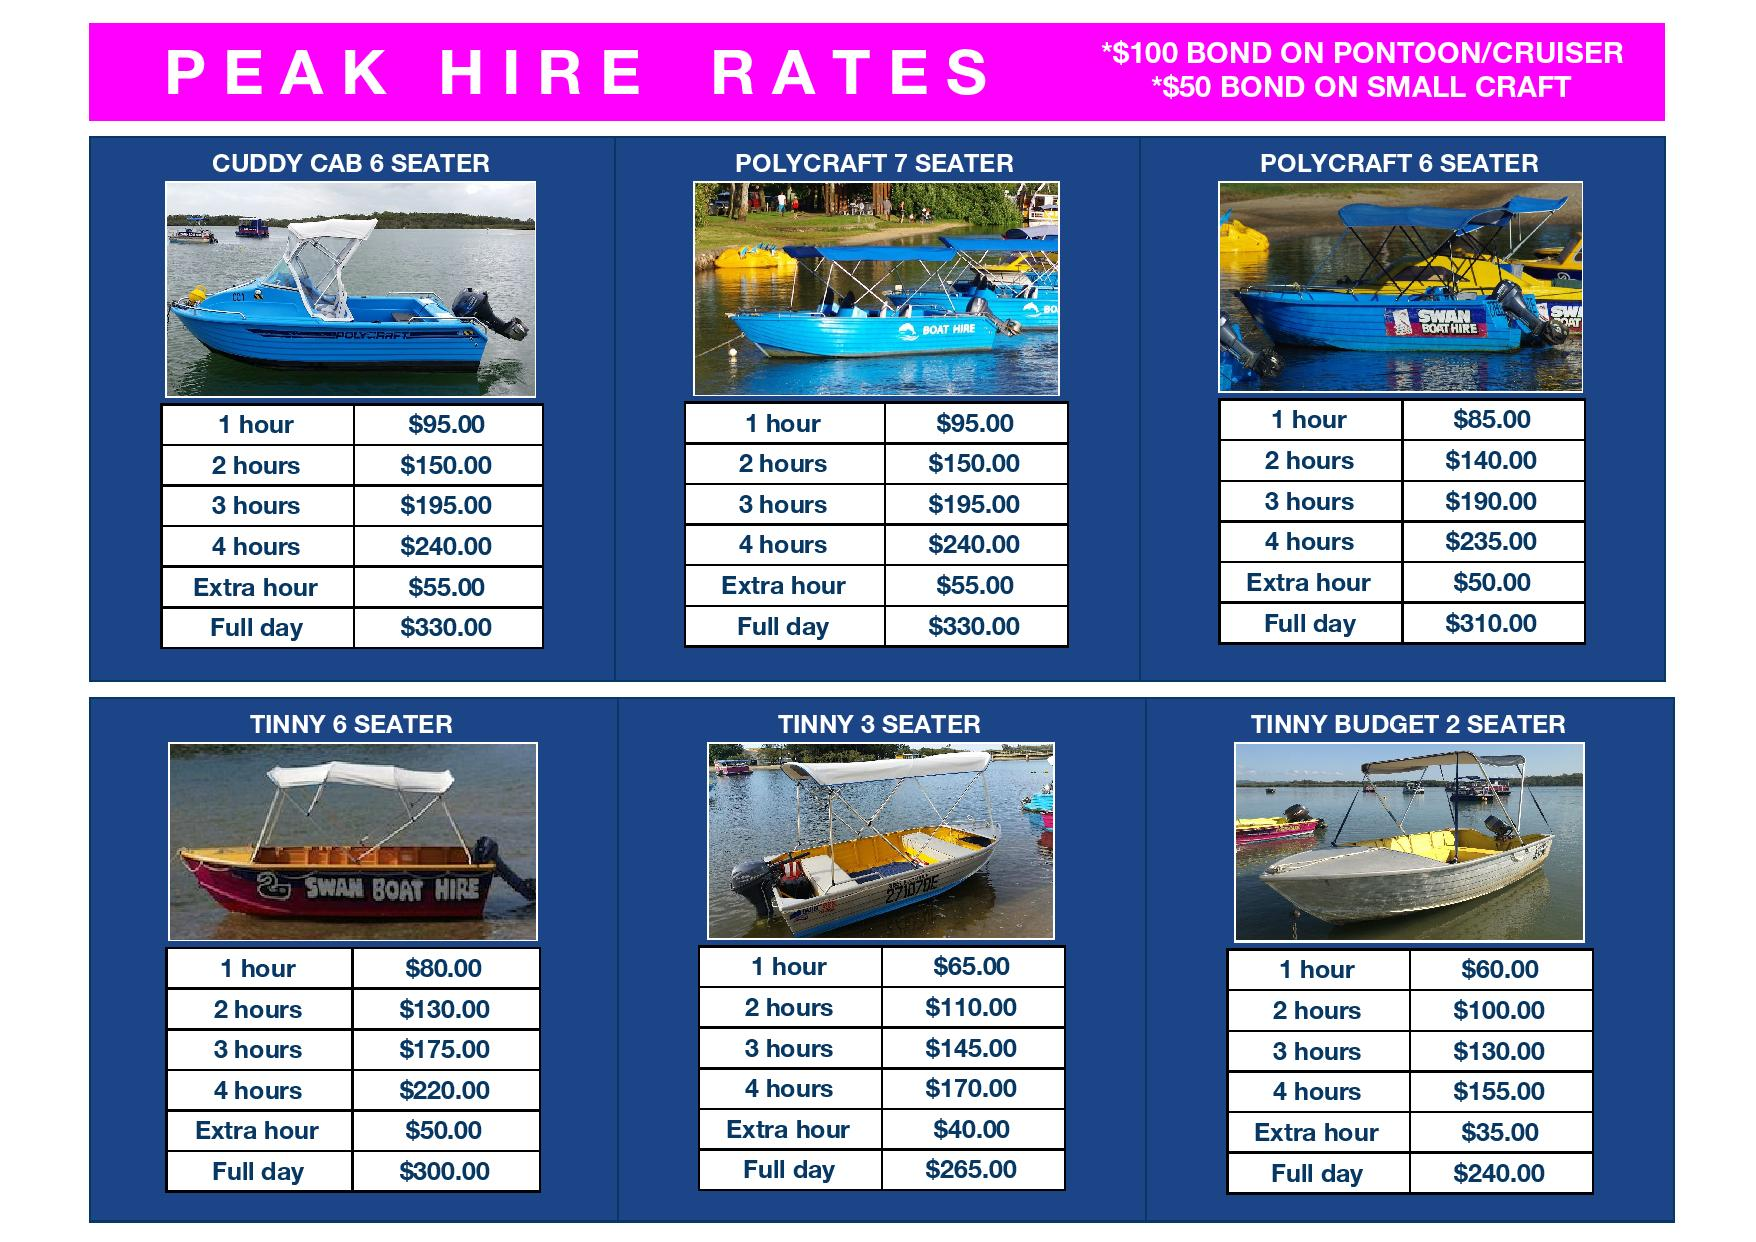 PEAK BOAT HIRE RATES 2019